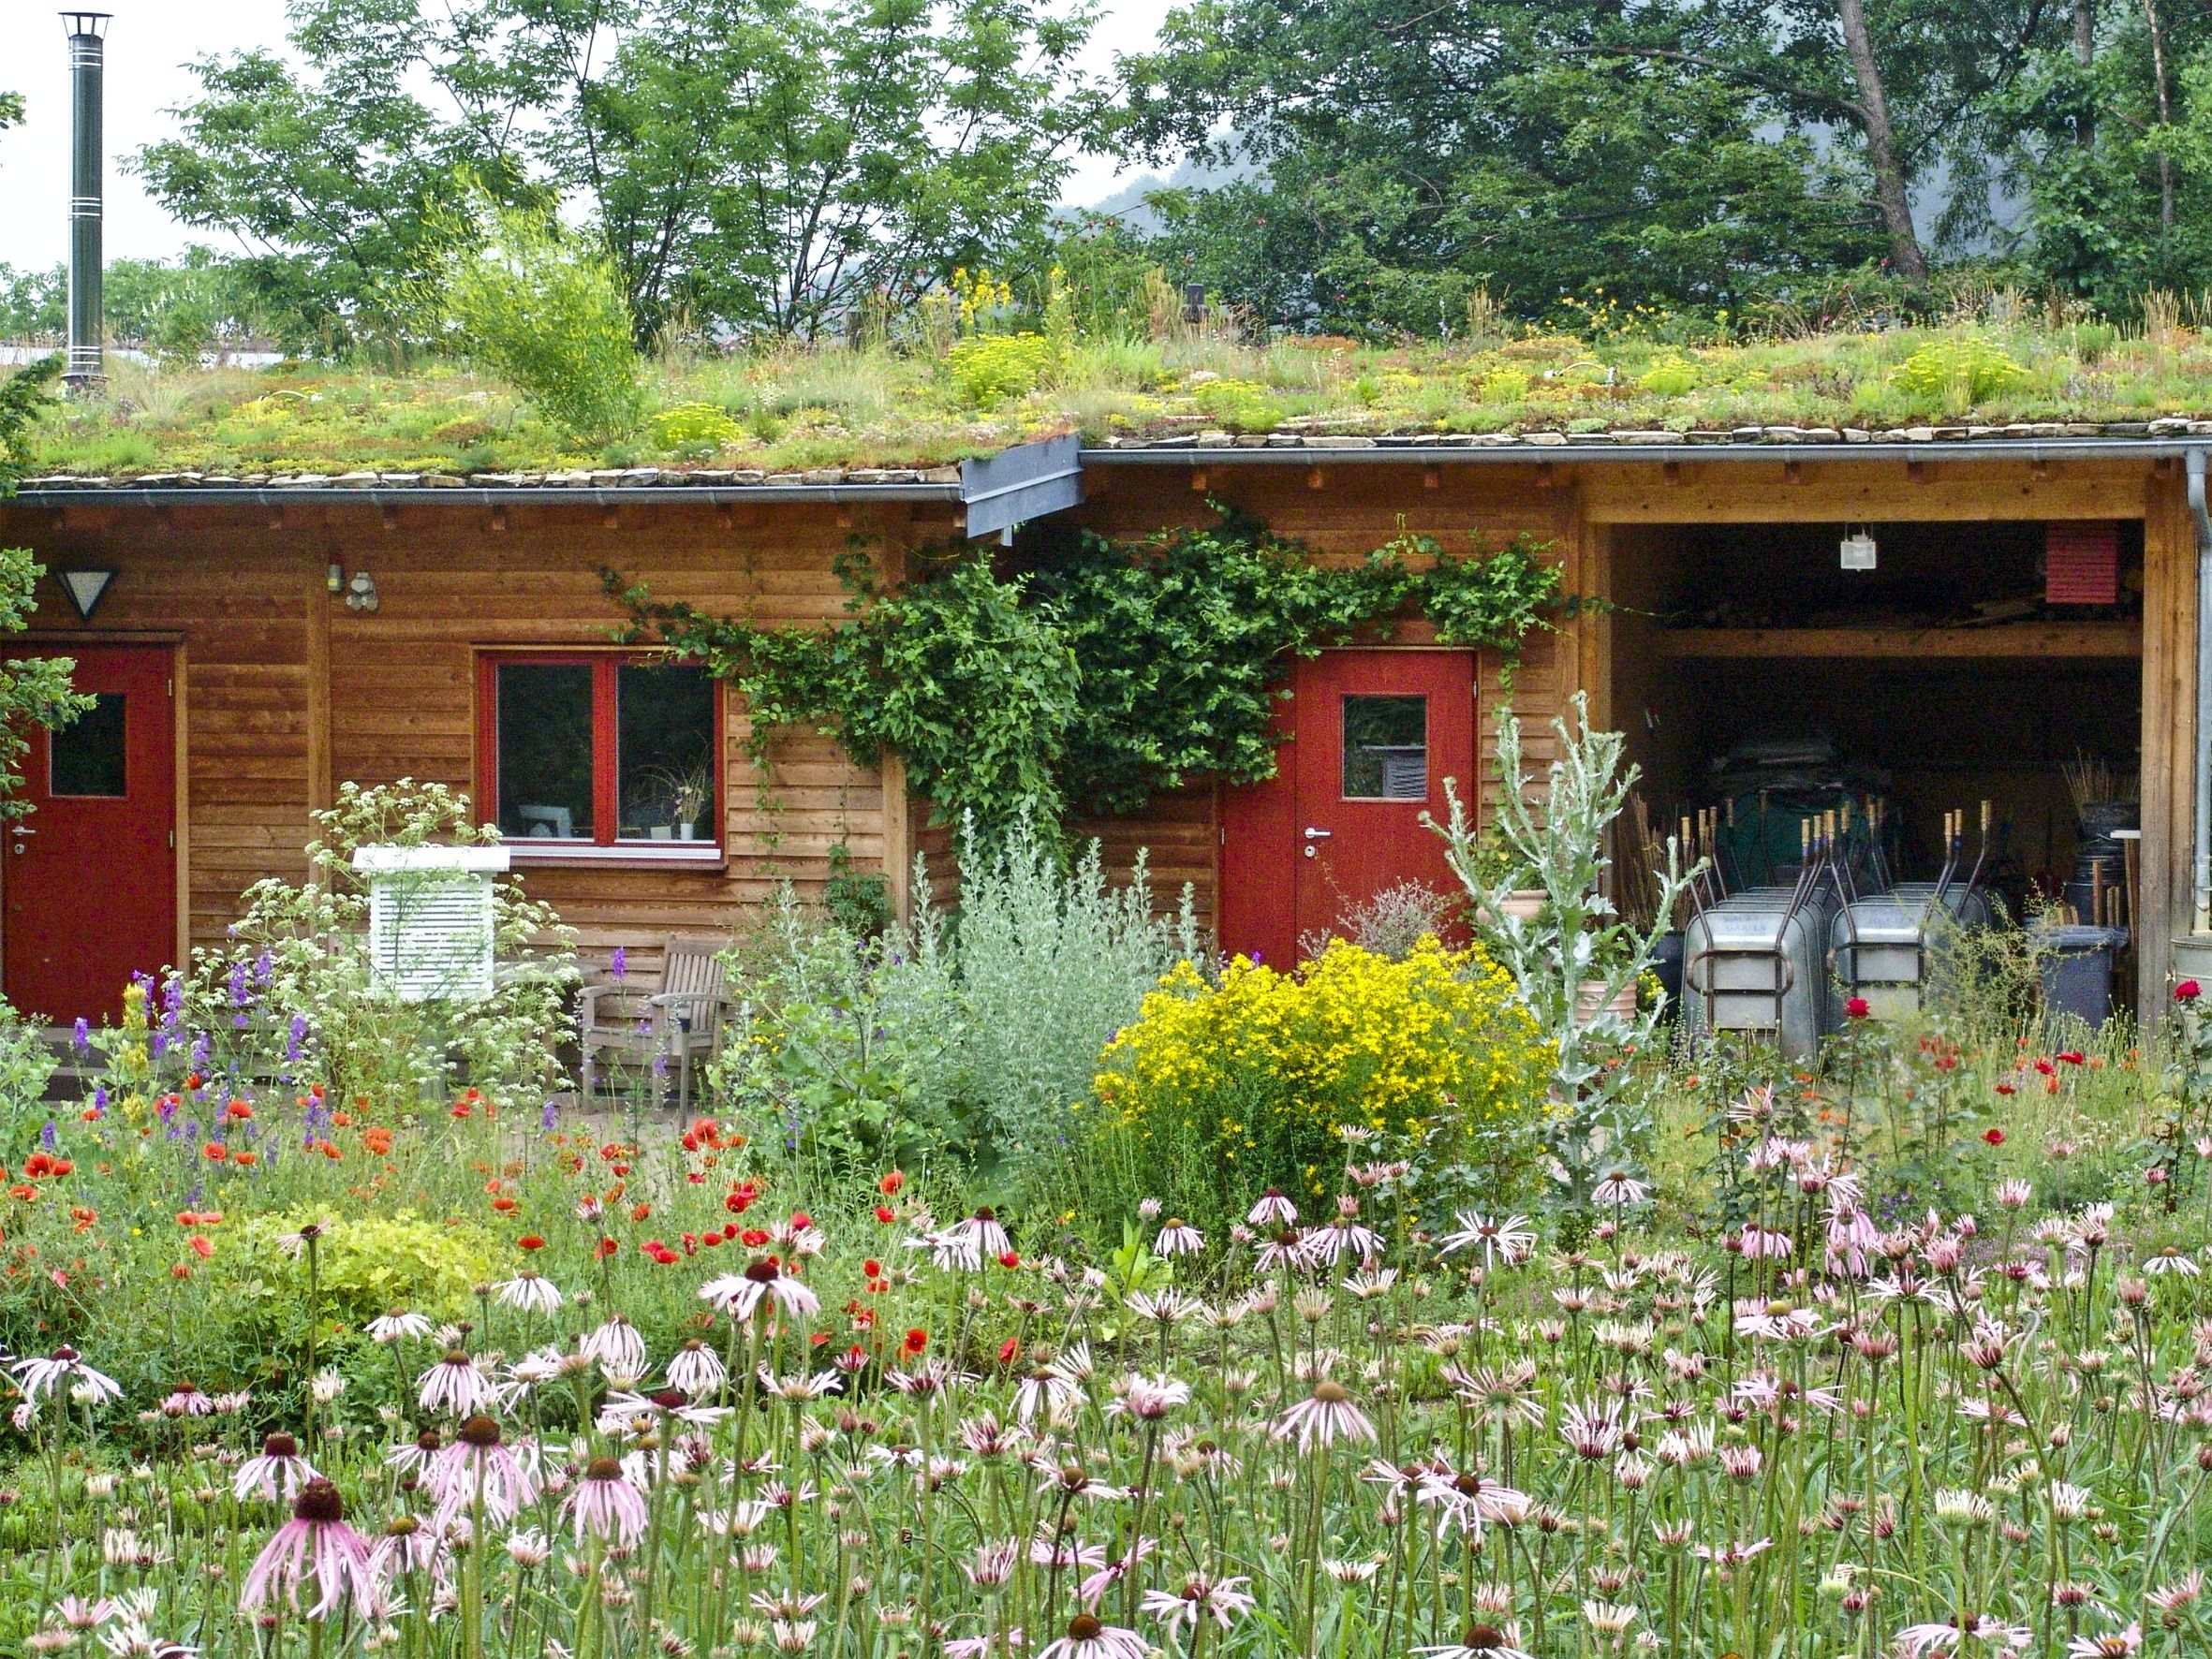 biodynamic gardening. In The Dr. Hauschka Biodynamic Gardens, Germany. #garden Gardening